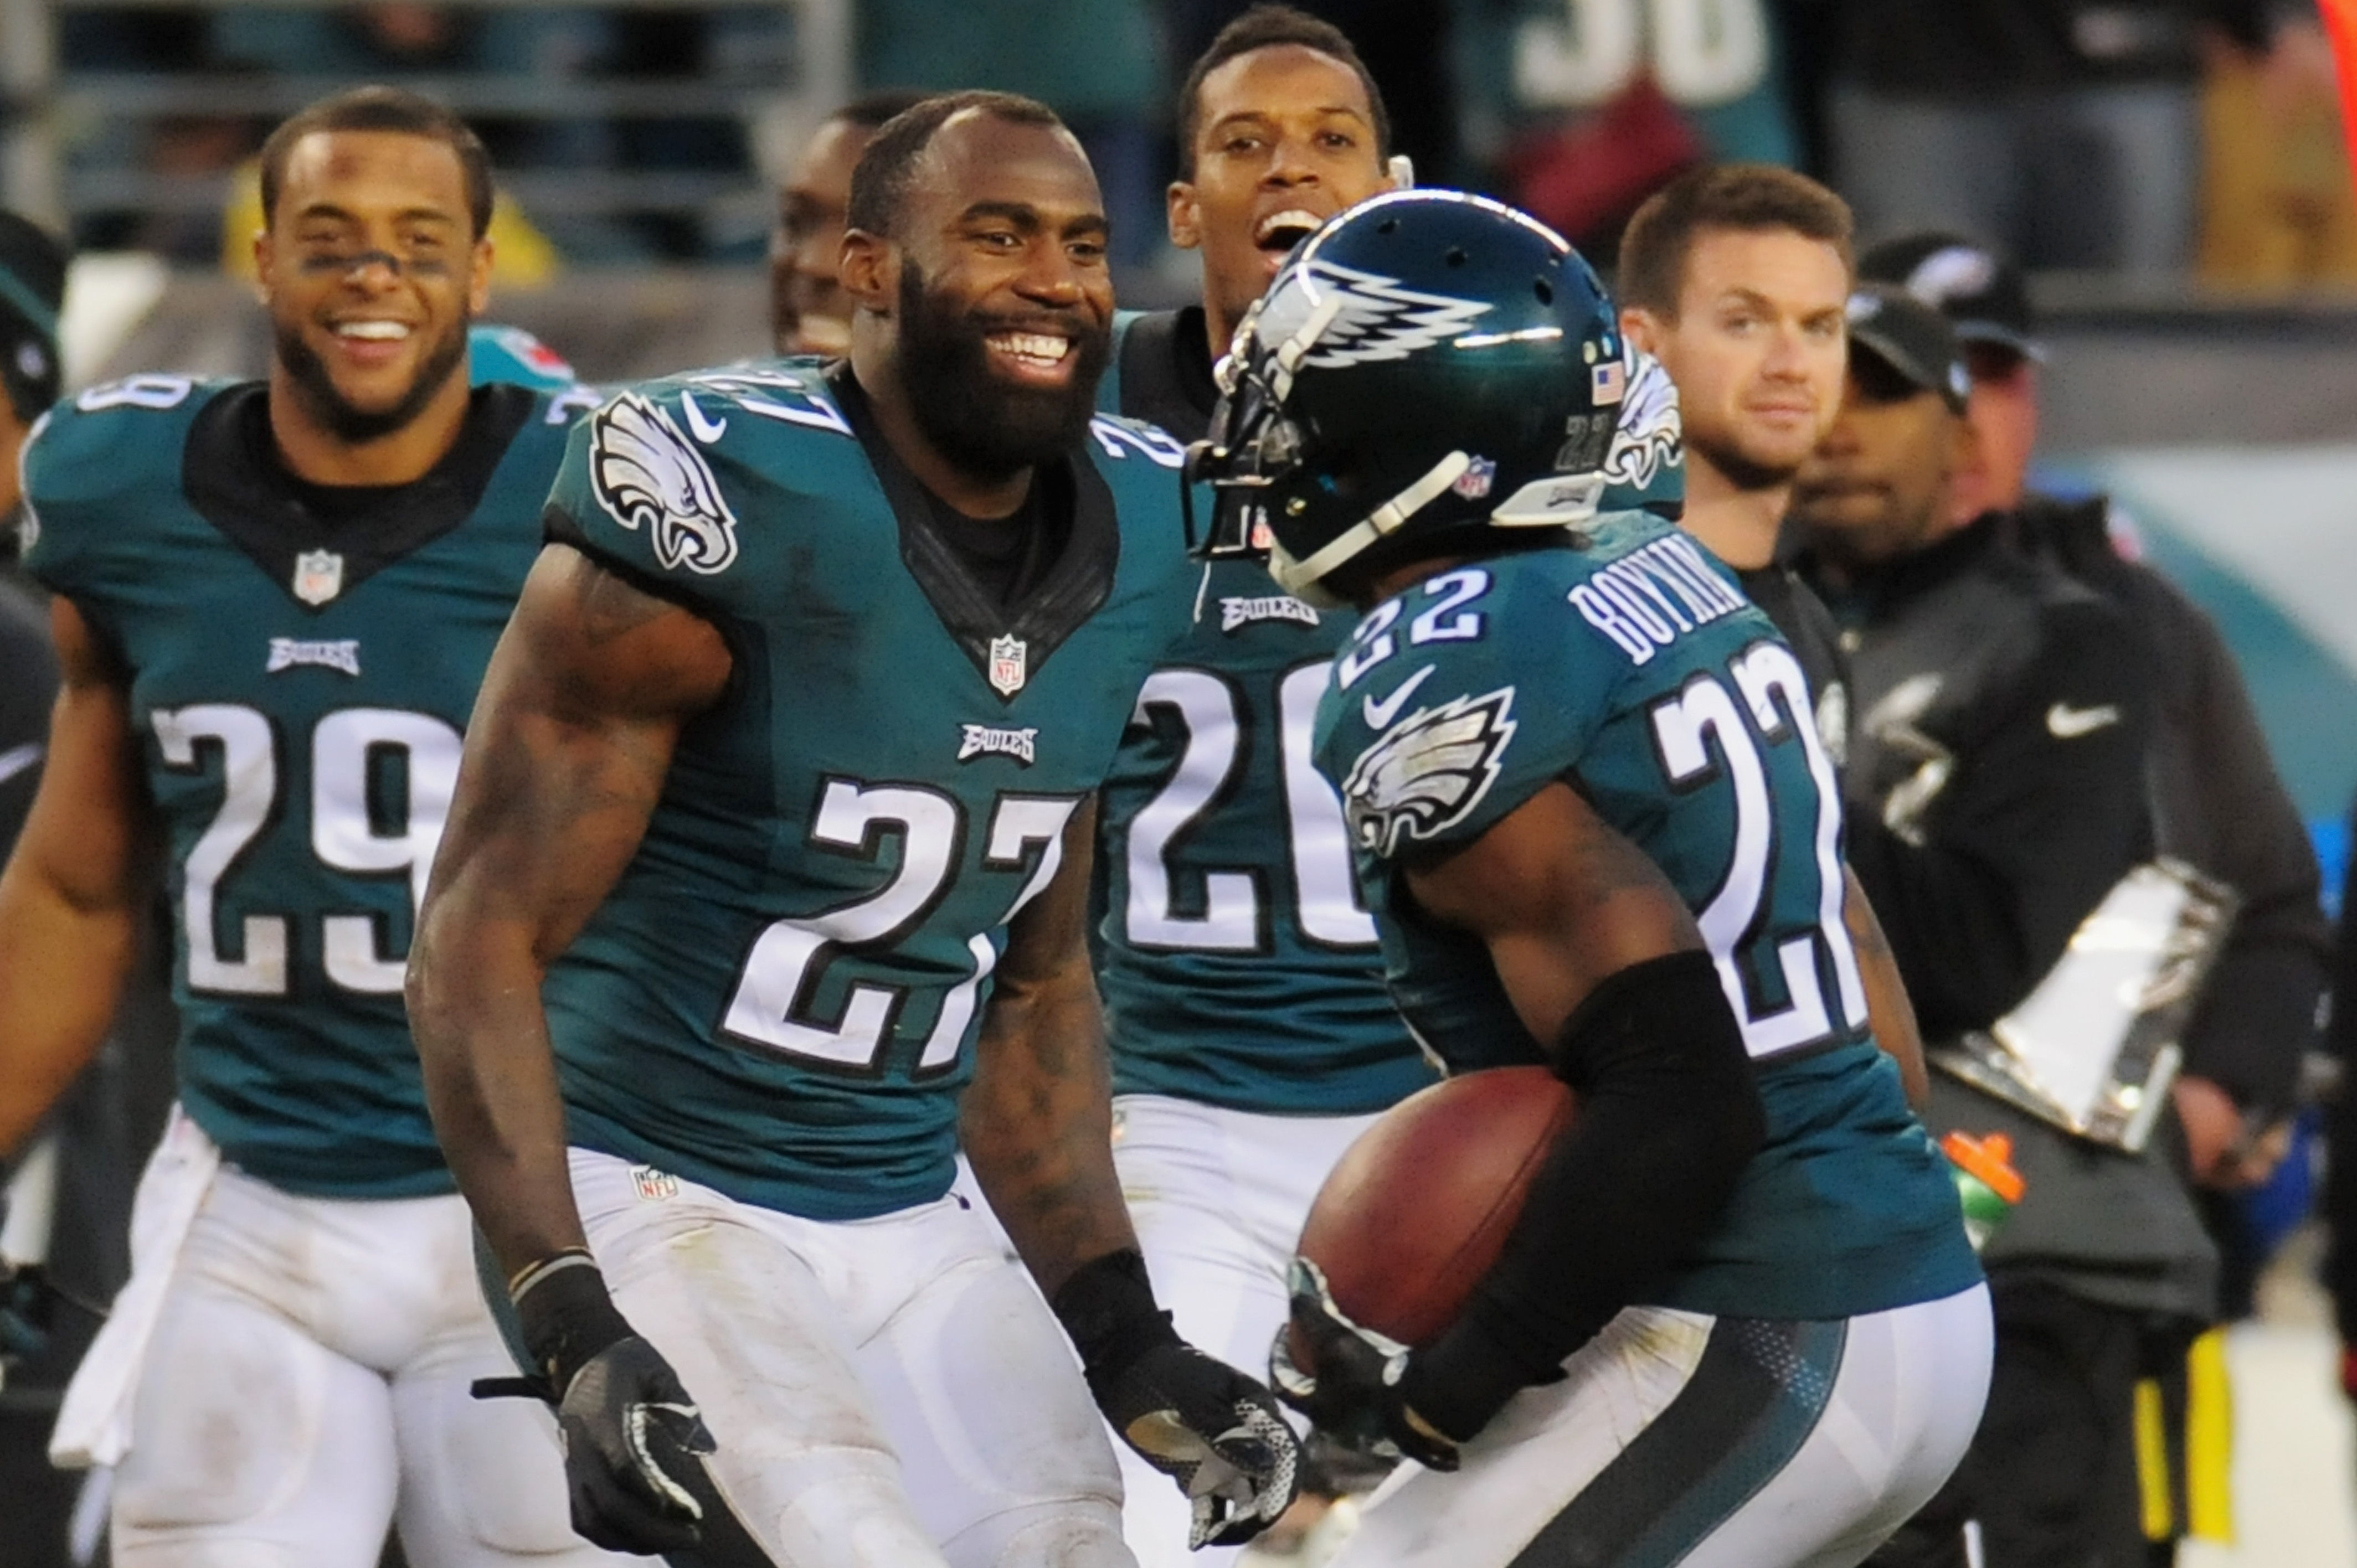 a212710ec PHILADELPHIA — The next time Eaglessafety Malcolm Jenkins and his teammates  take the field this Sunday at Lincoln Financial Field